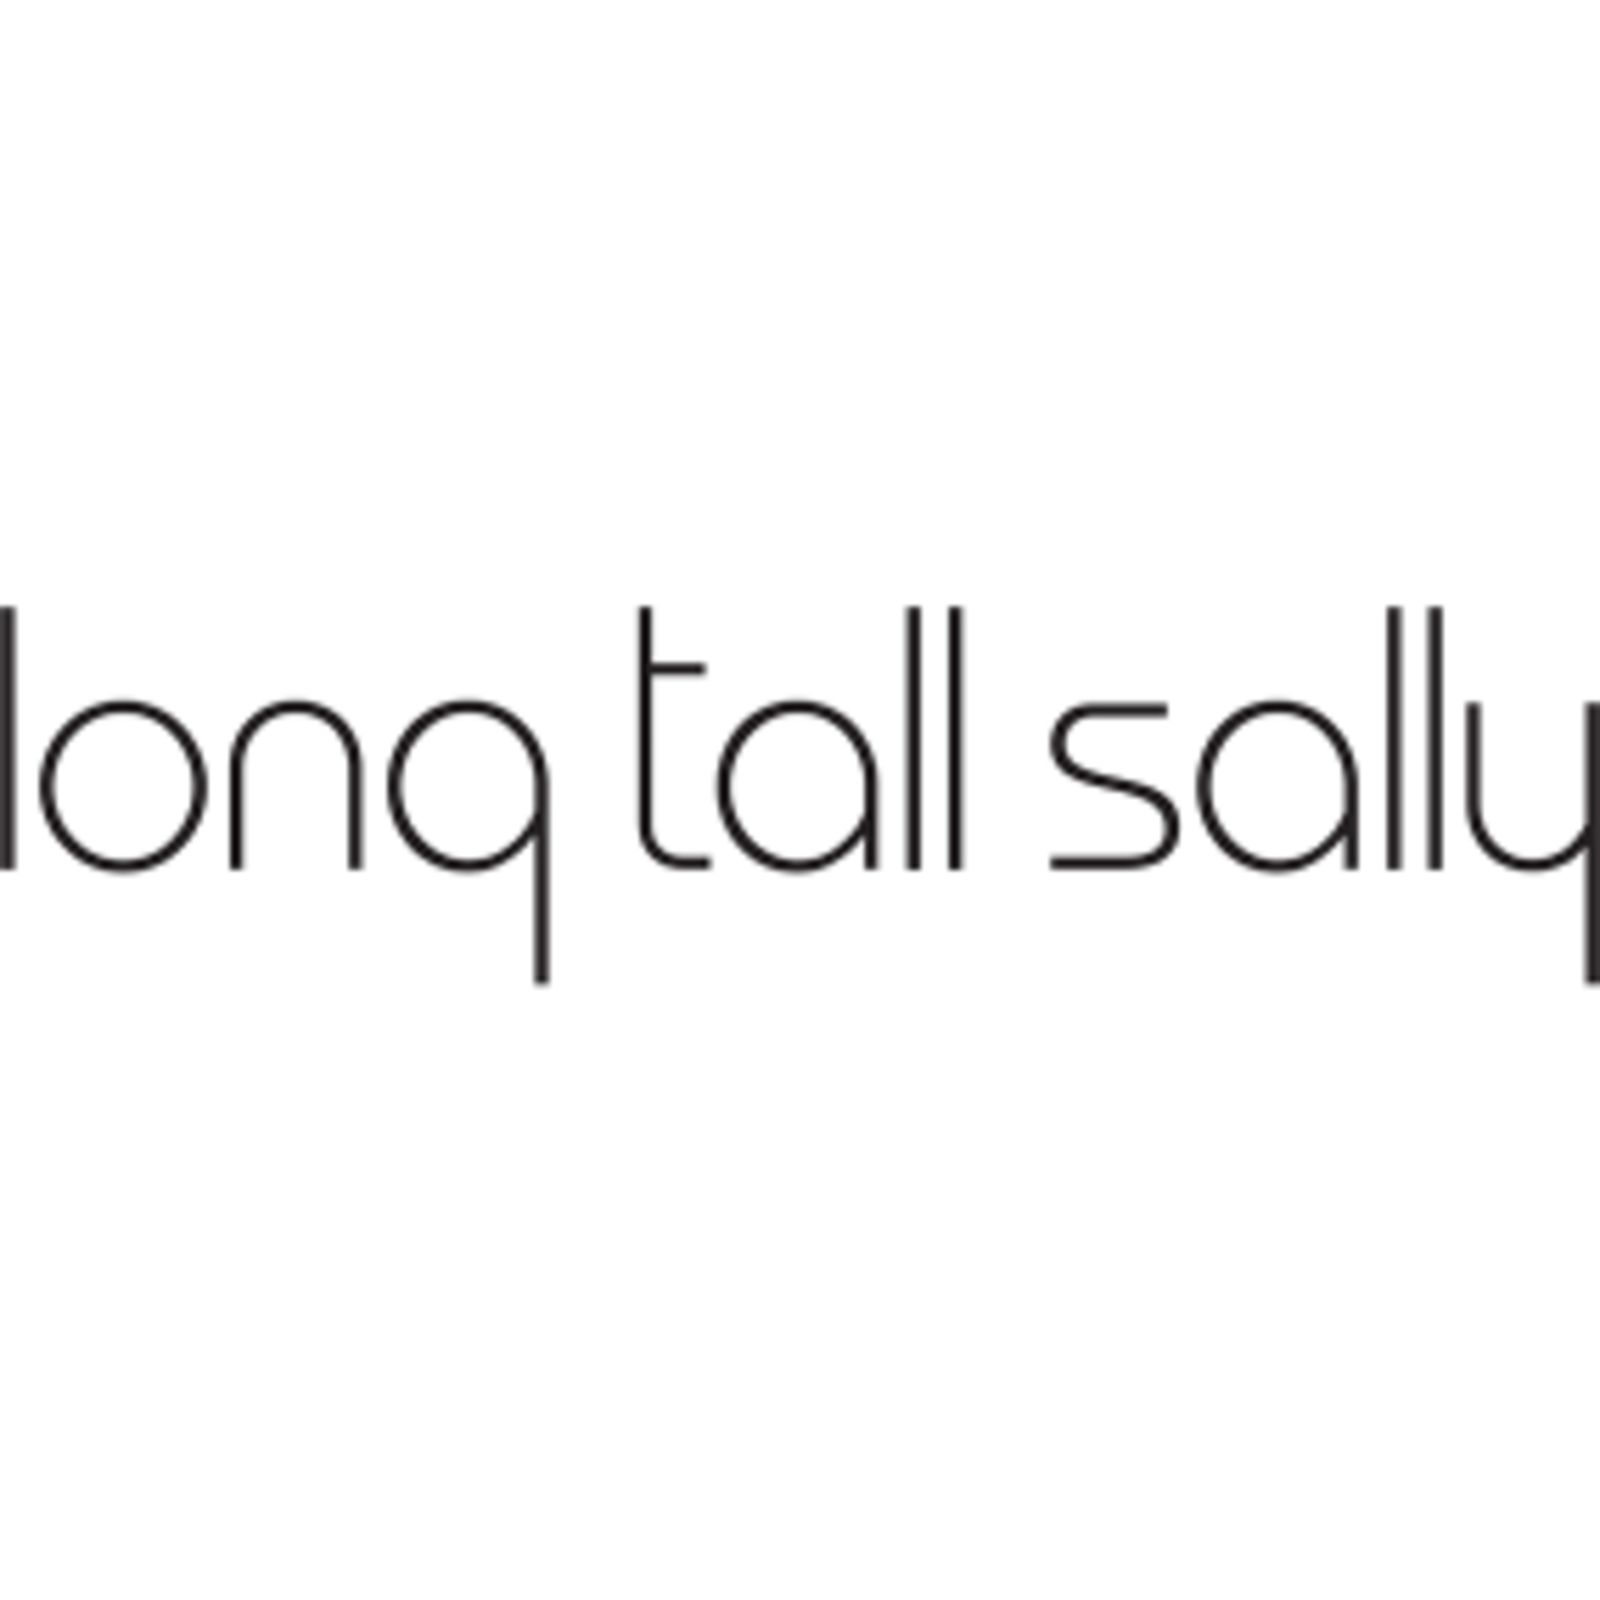 long tall sally (Image 1)